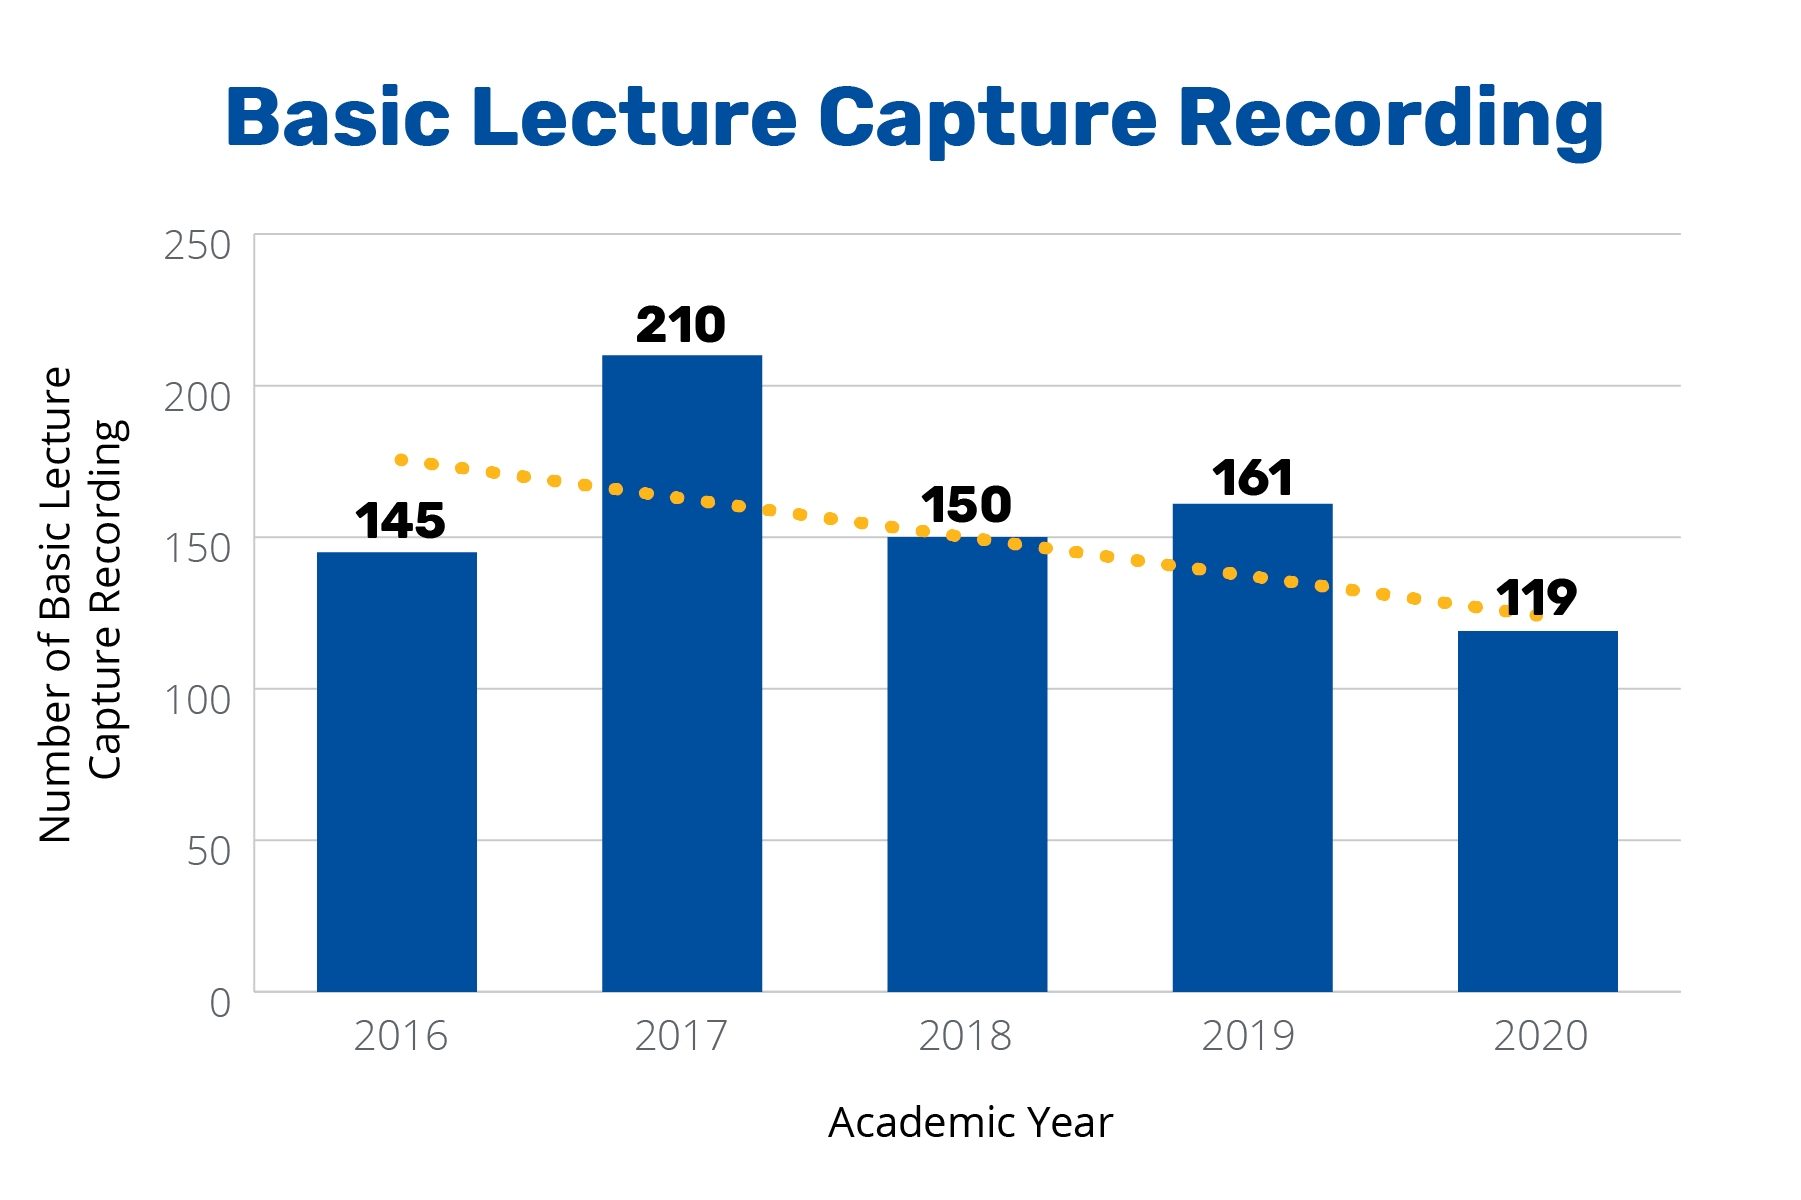 Annual Report 2020 - Basic Lecture Capture Recording